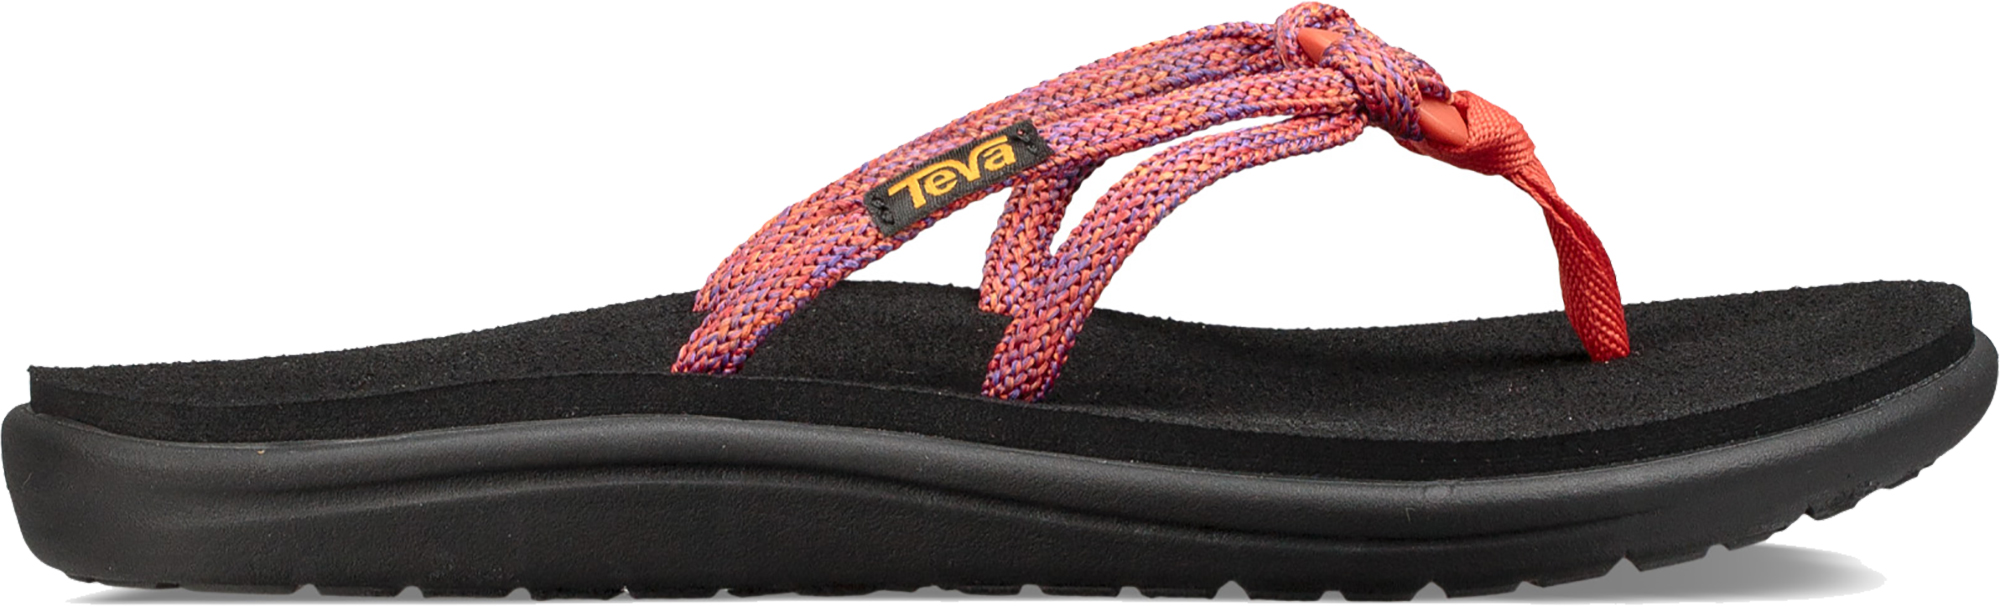 a4f1193980023 Teva Women s Voya Tri-flip Flip Flops Comfortable Casual Style Uk4  Pink purple. About this product. Picture 1 of 5  Picture 2 of 5 ...